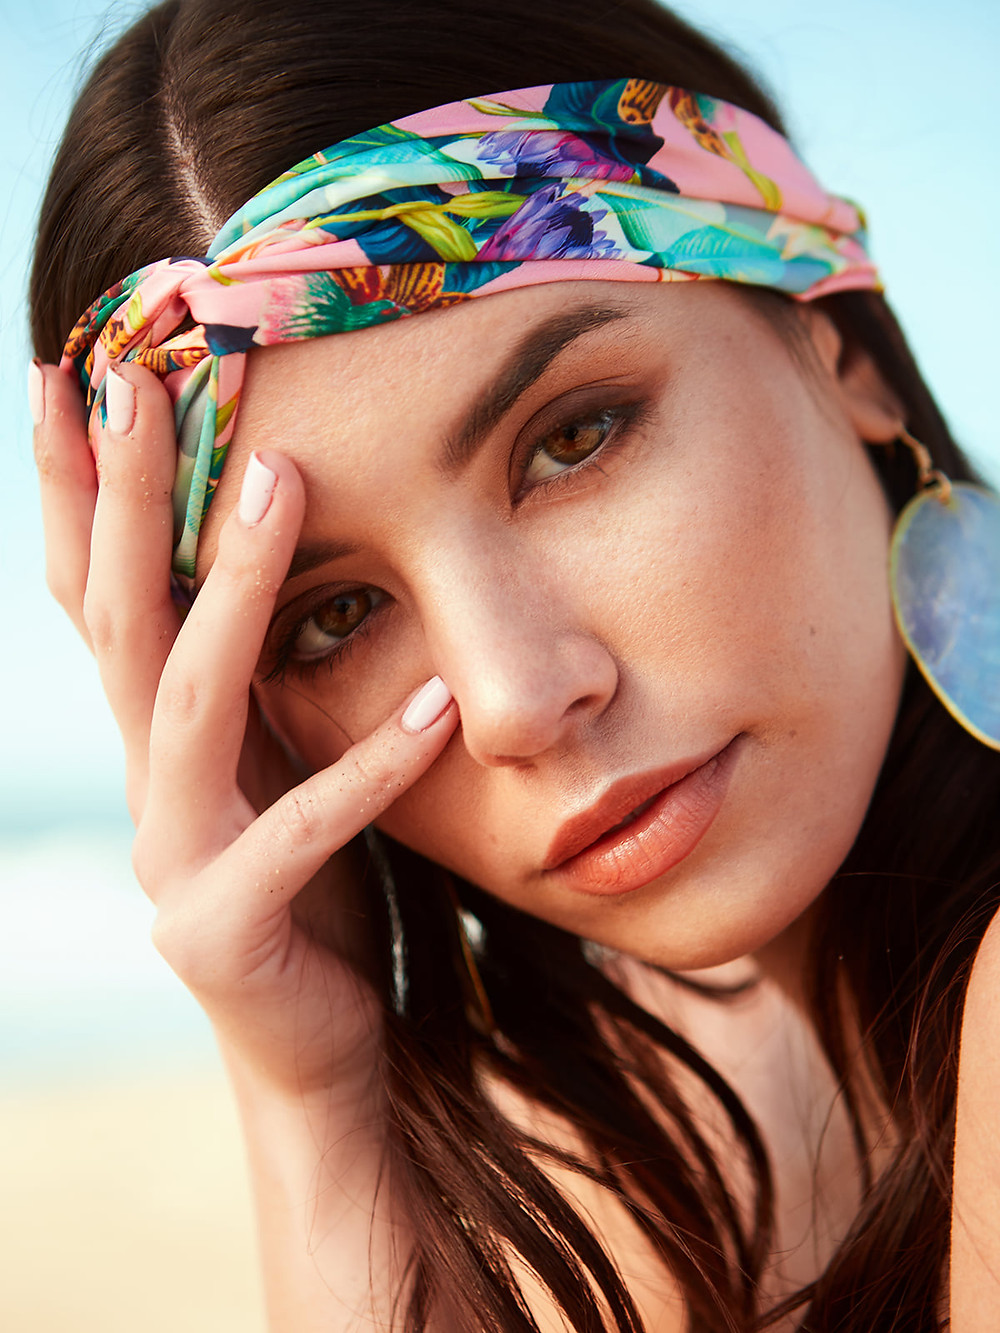 A tight fashion portrait of model Gracie Phillips wearing a multicolor headband and abalone earrings from H&M.  Photographed by Patrick Patton.